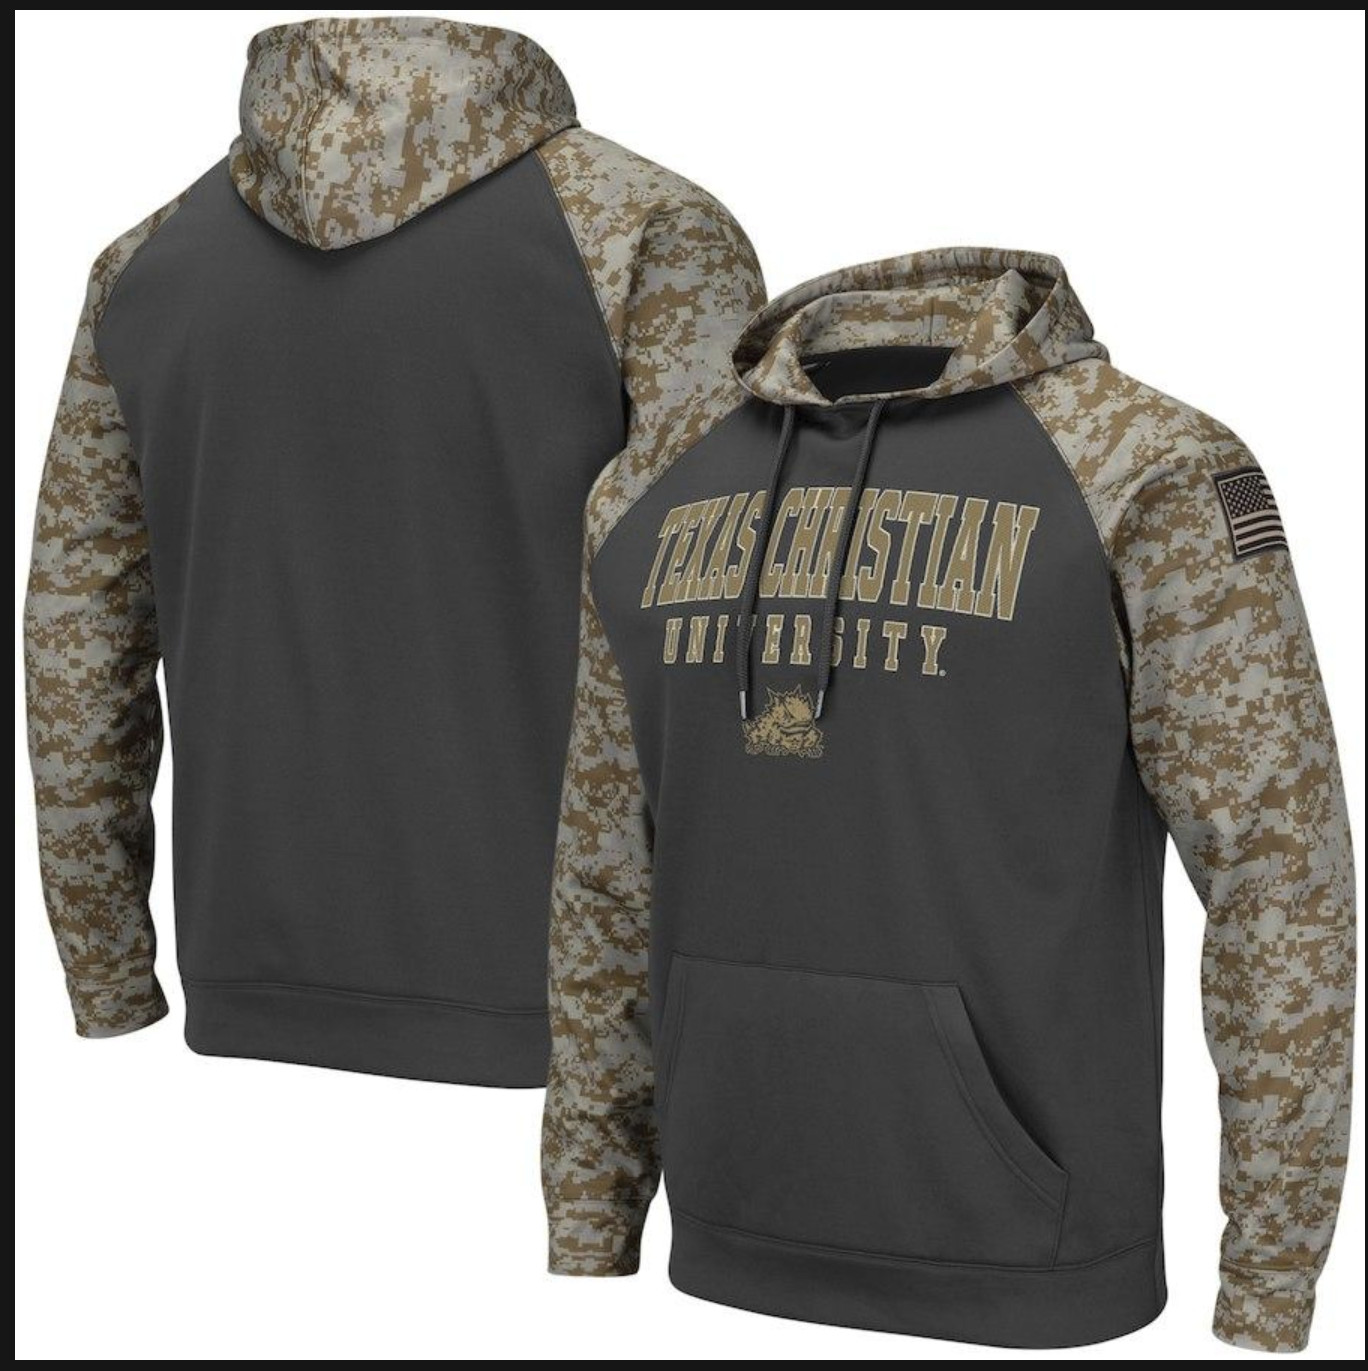 Texas Christian University Gray Camo Men's Pullover Hoodie